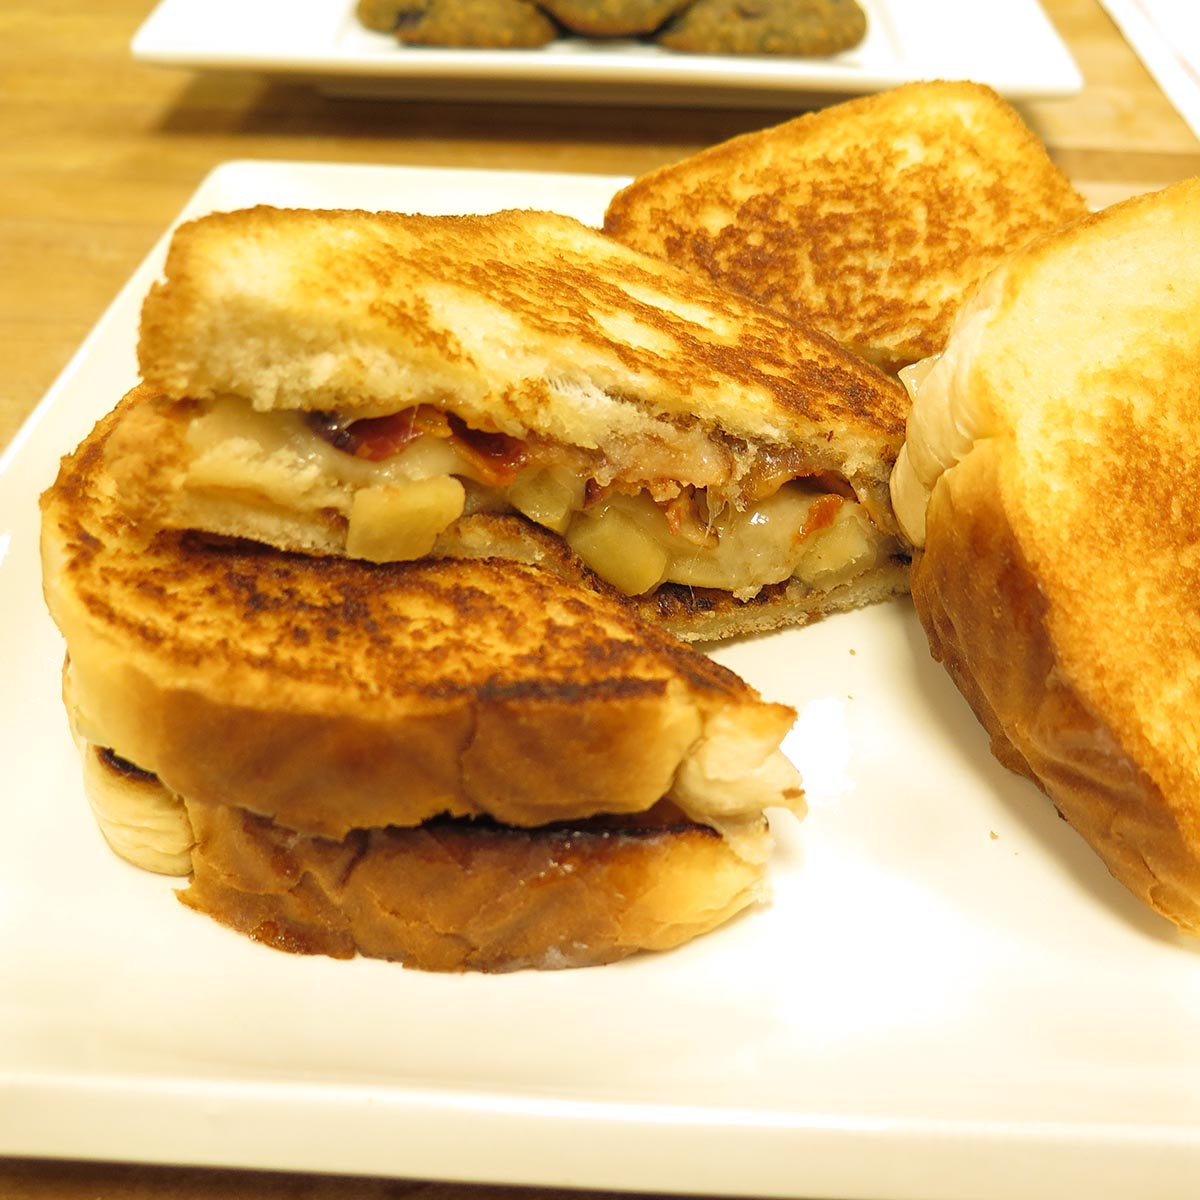 Apple Swiss Cheese and Bacon Grilled Cheese